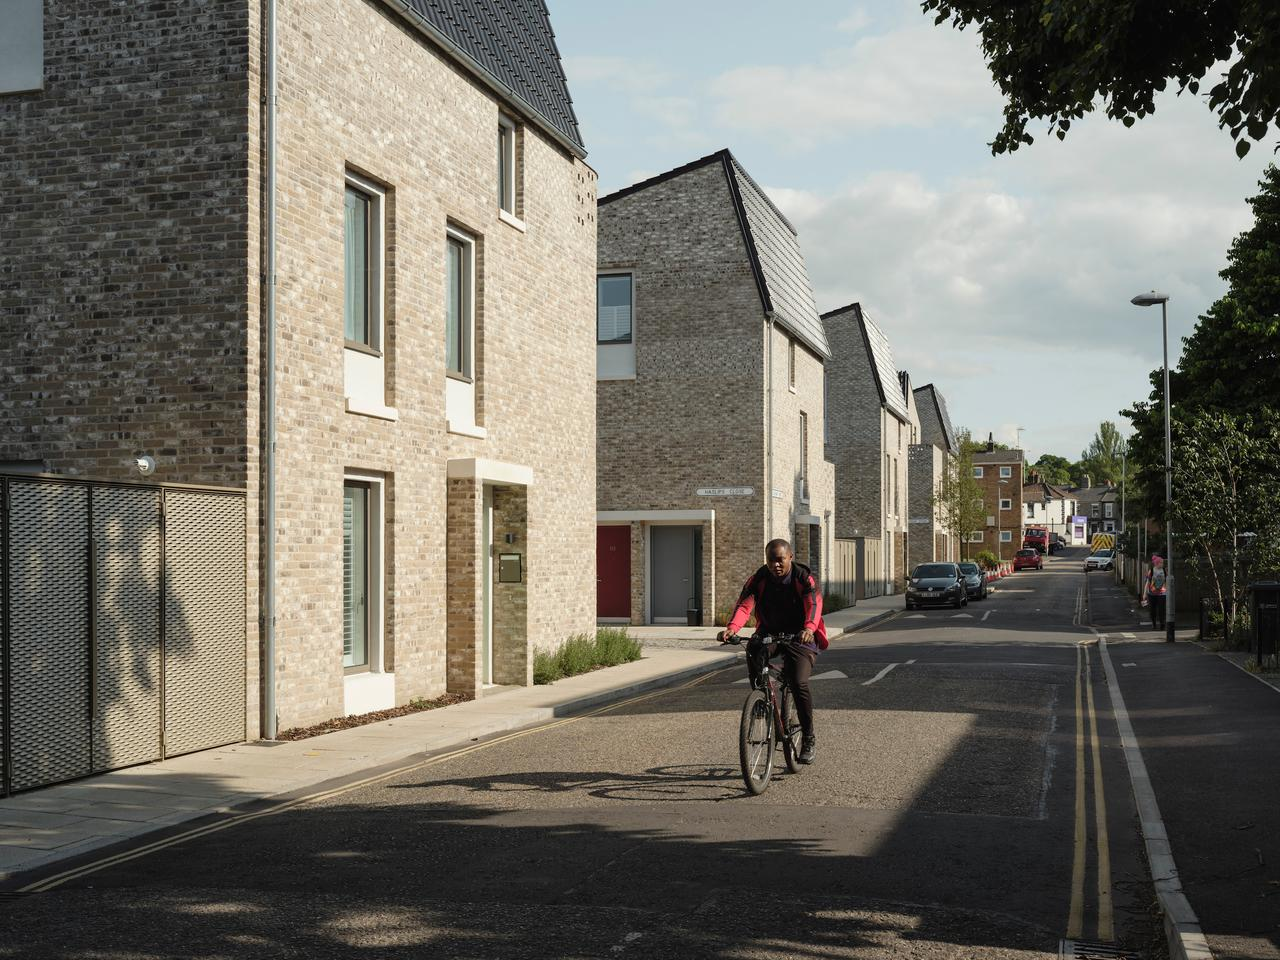 Goldsmith Street won the Stirling Prize, which is Britain's most prestigious architecture award